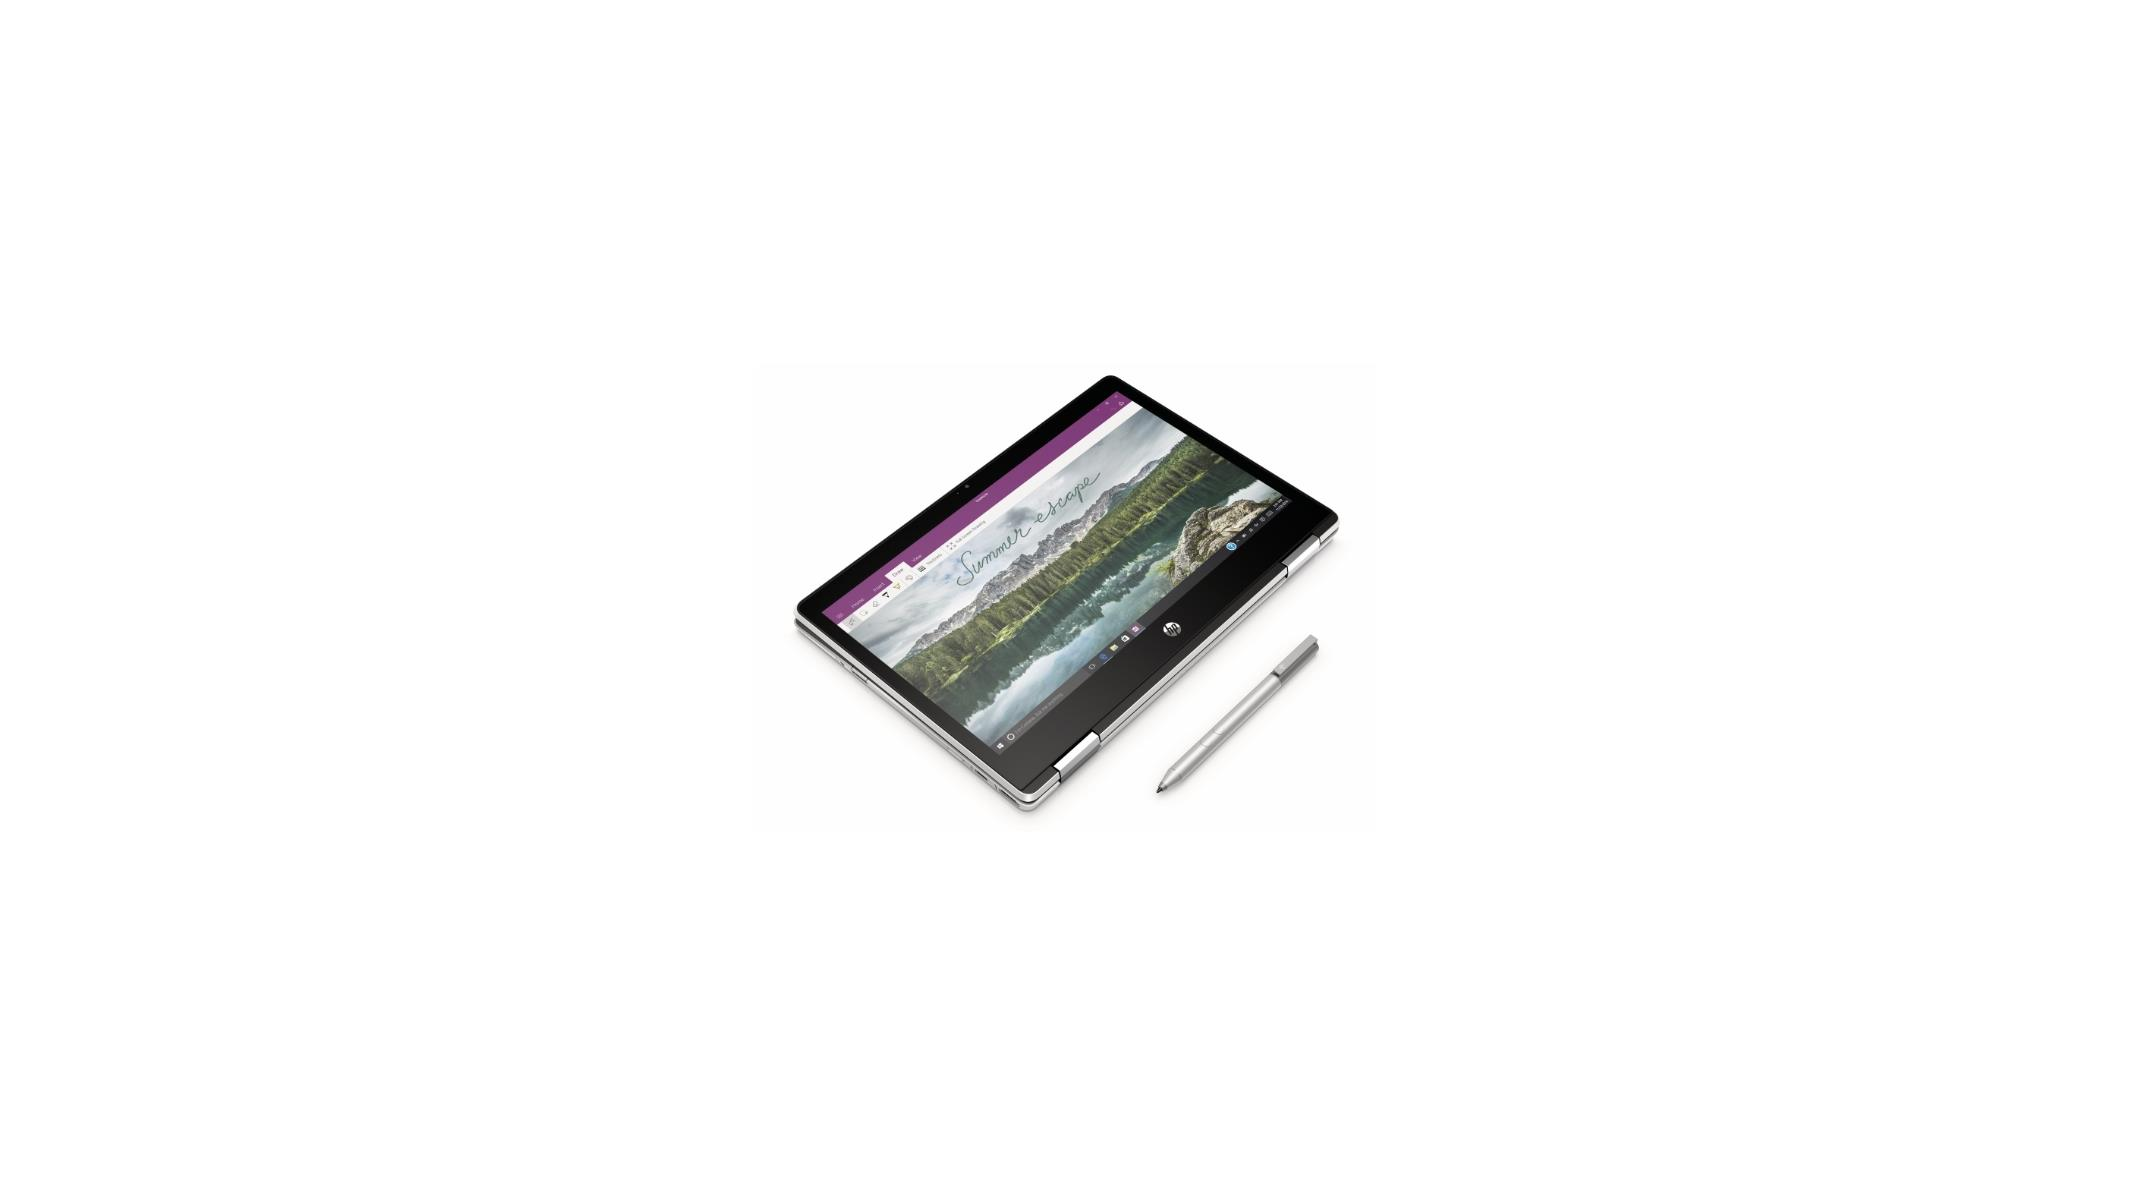 HP Launches Refreshed Pavilion x360 2-in-1 Lineup With